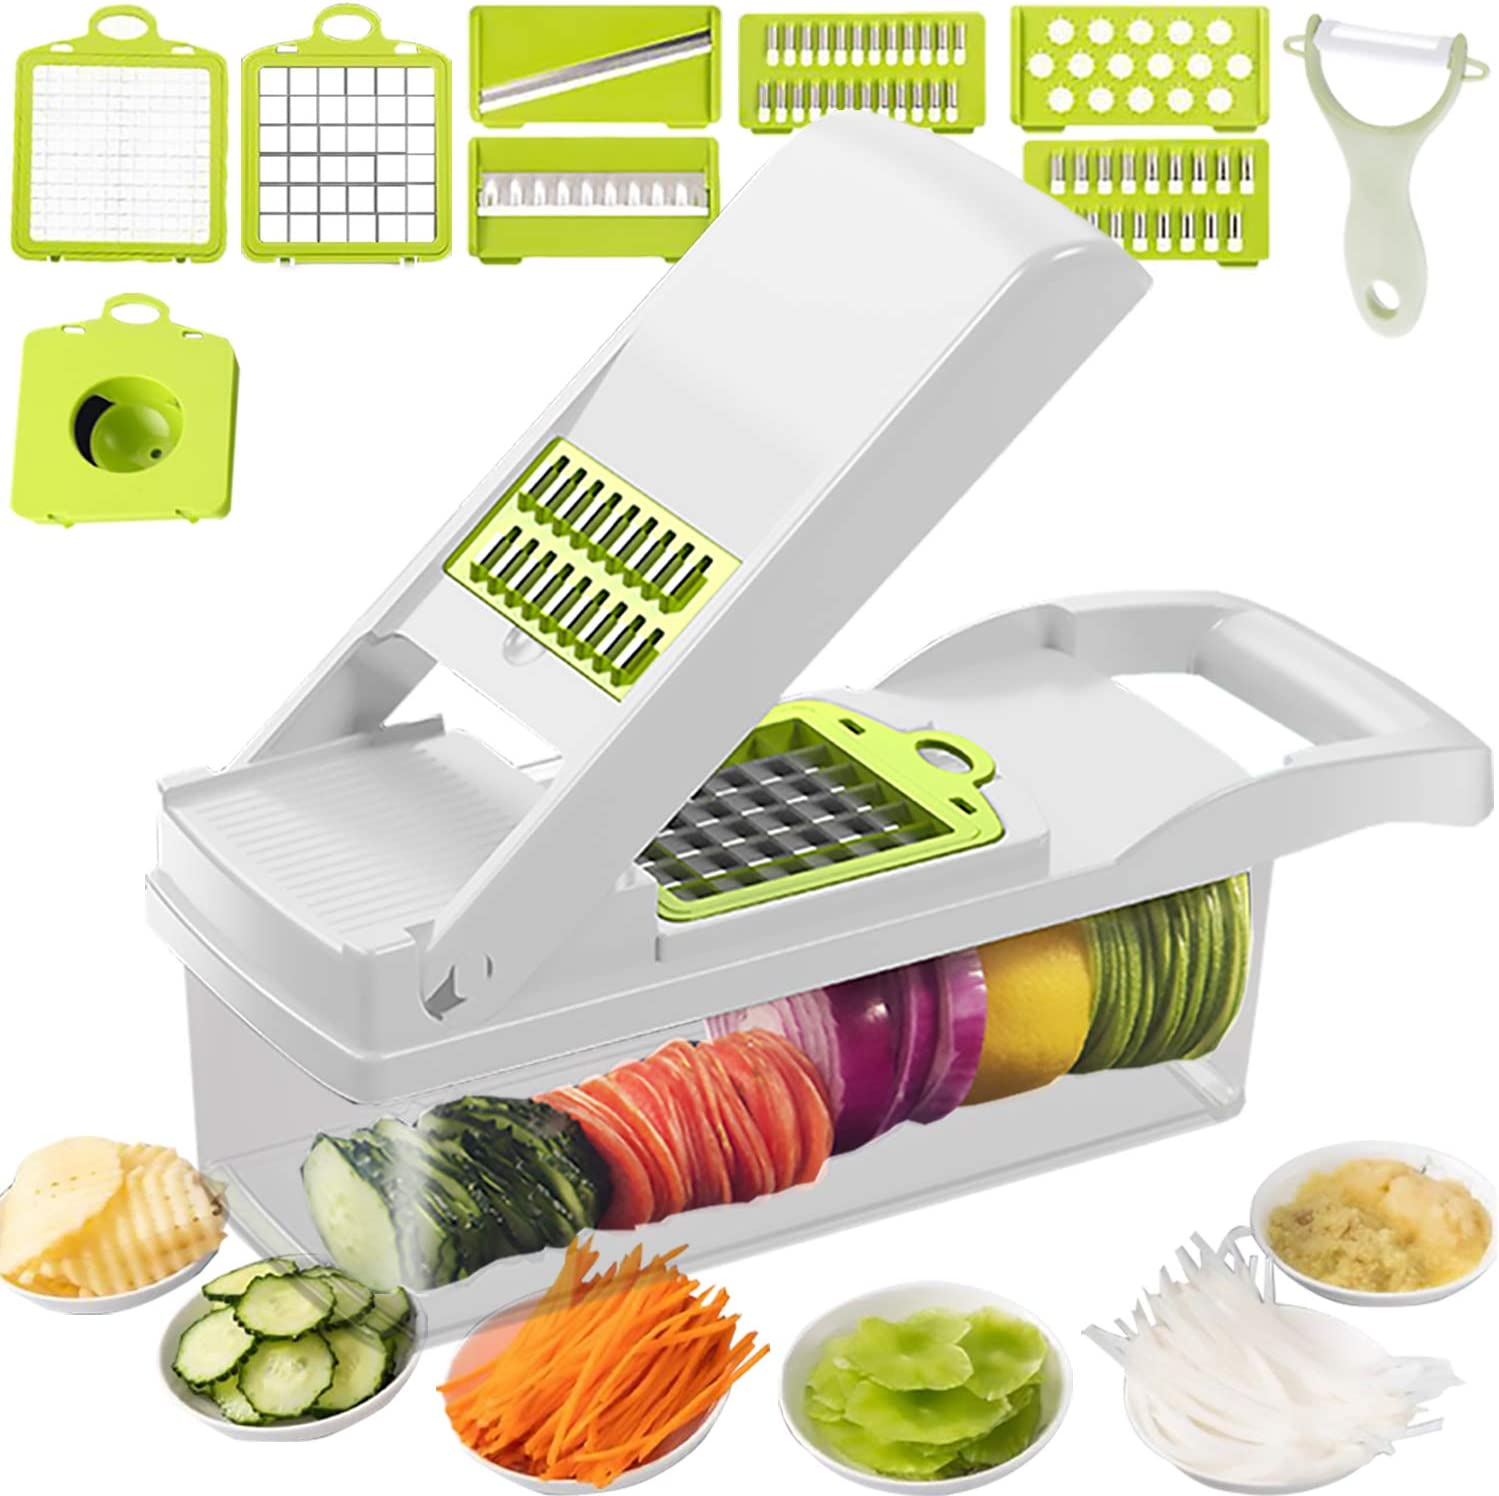 Onion Chopper Mutilfunctional Vegetable Chopper Dicer Slicer Cutter French Fry Cutter Food Chopper with Container 7 Blades